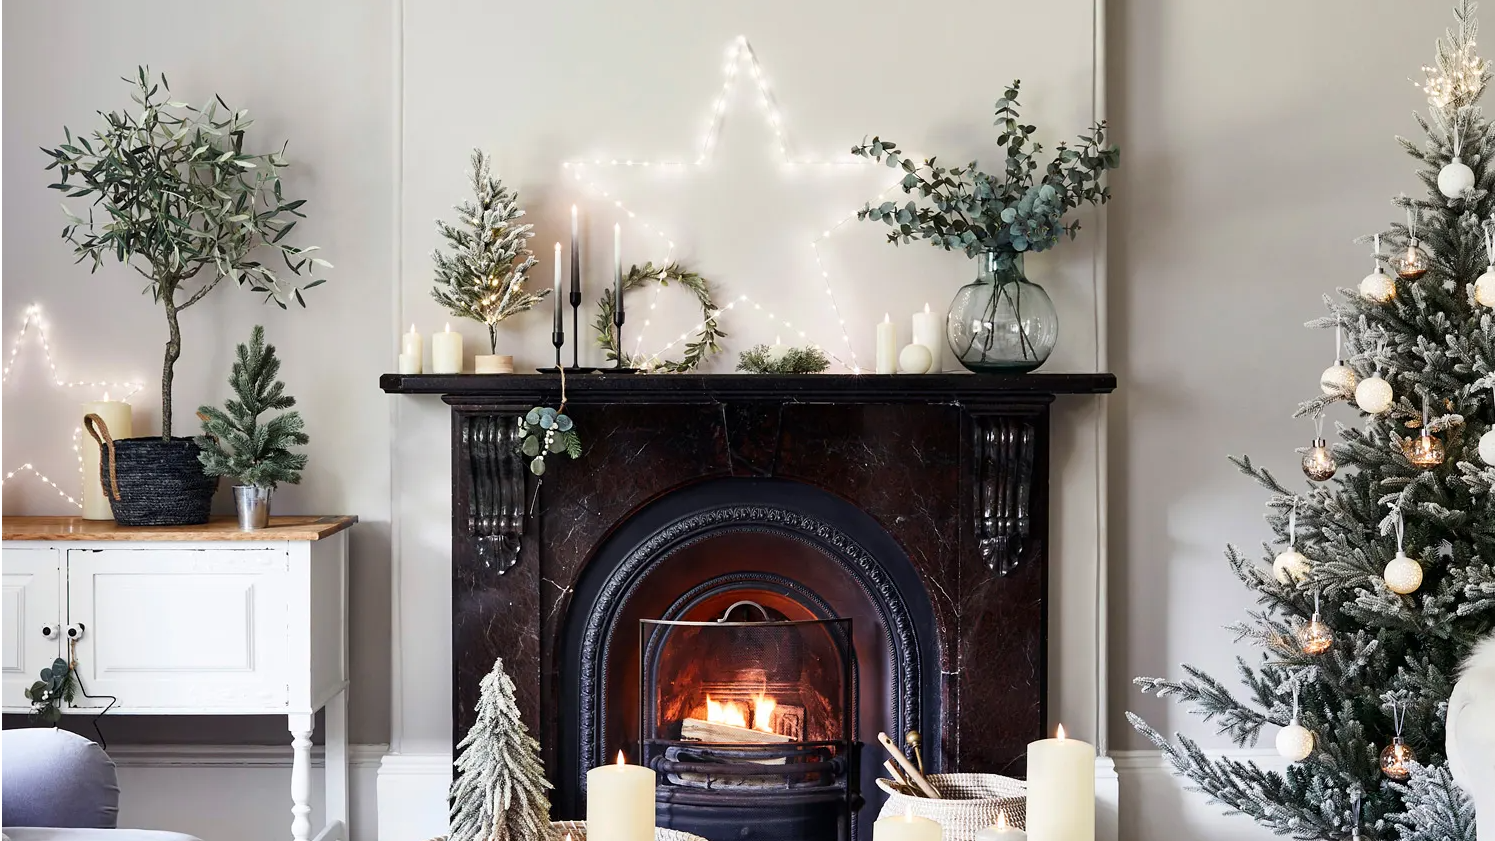 Festive fireplace in living room with oversized Osby star light illuminated on mantel with variety of festive foliage and mini trees with an assortment of TruGlow candles displayed